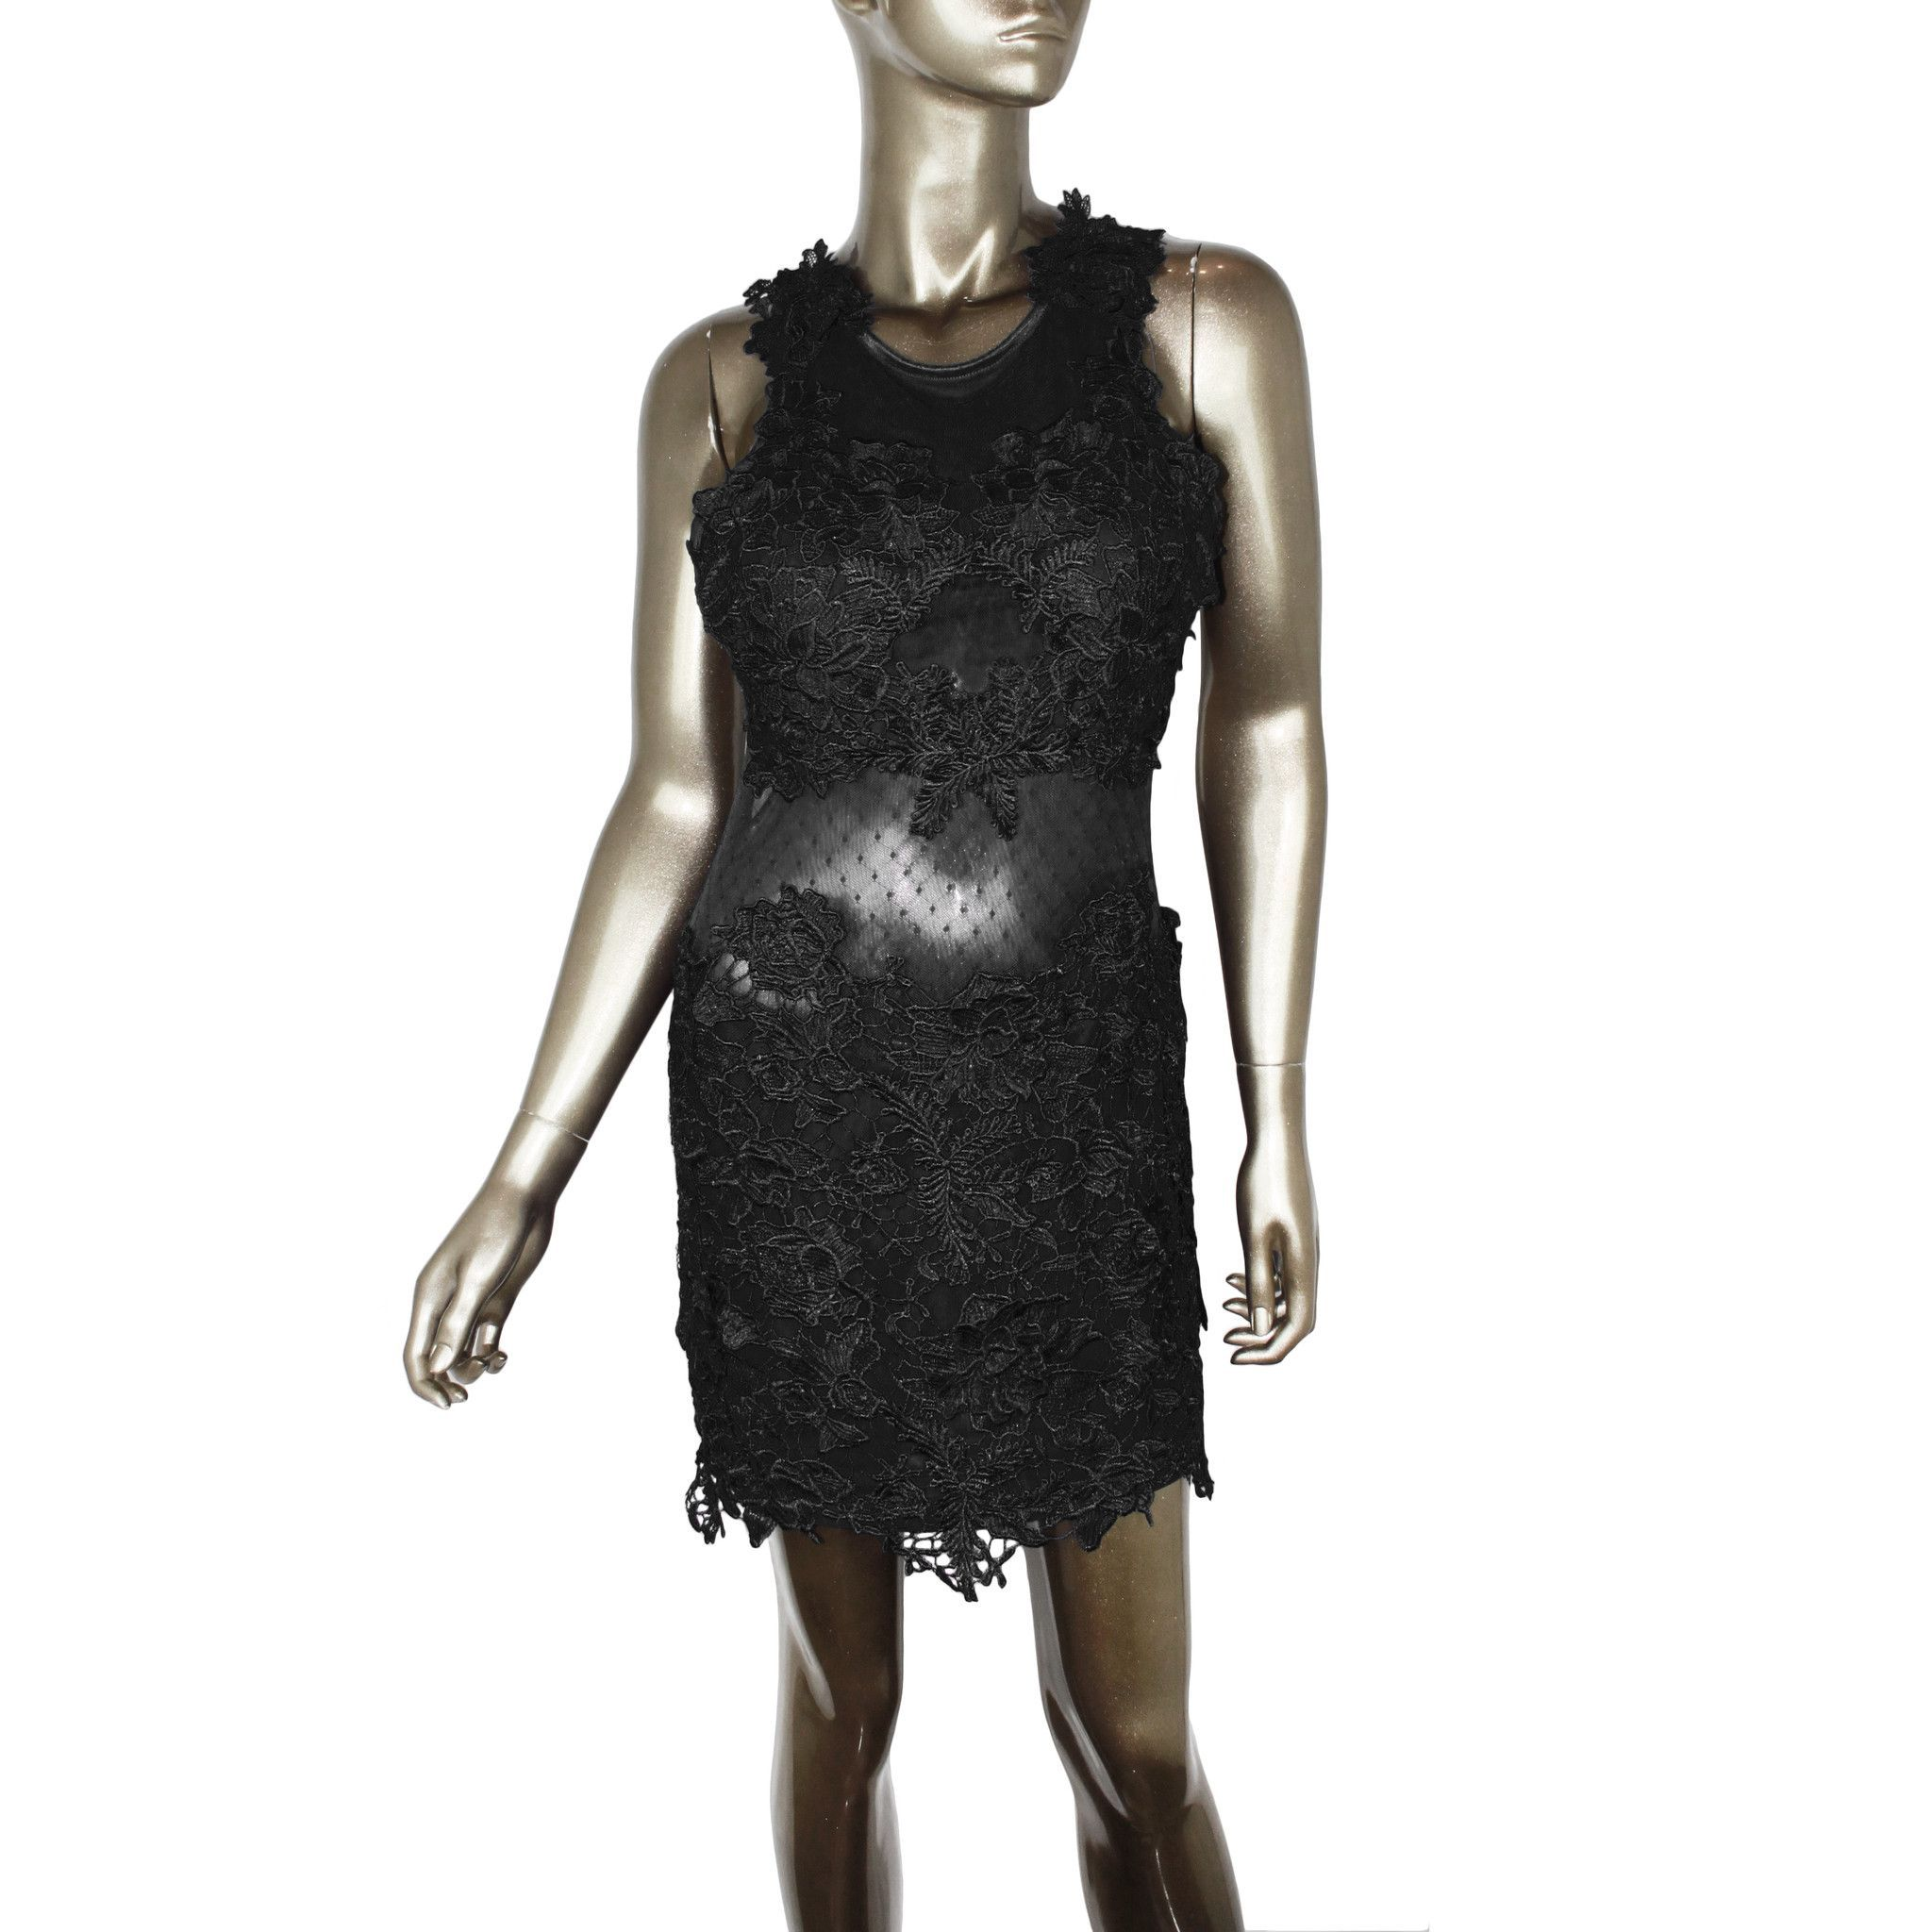 Vasco Rossi Floral Lace Dress